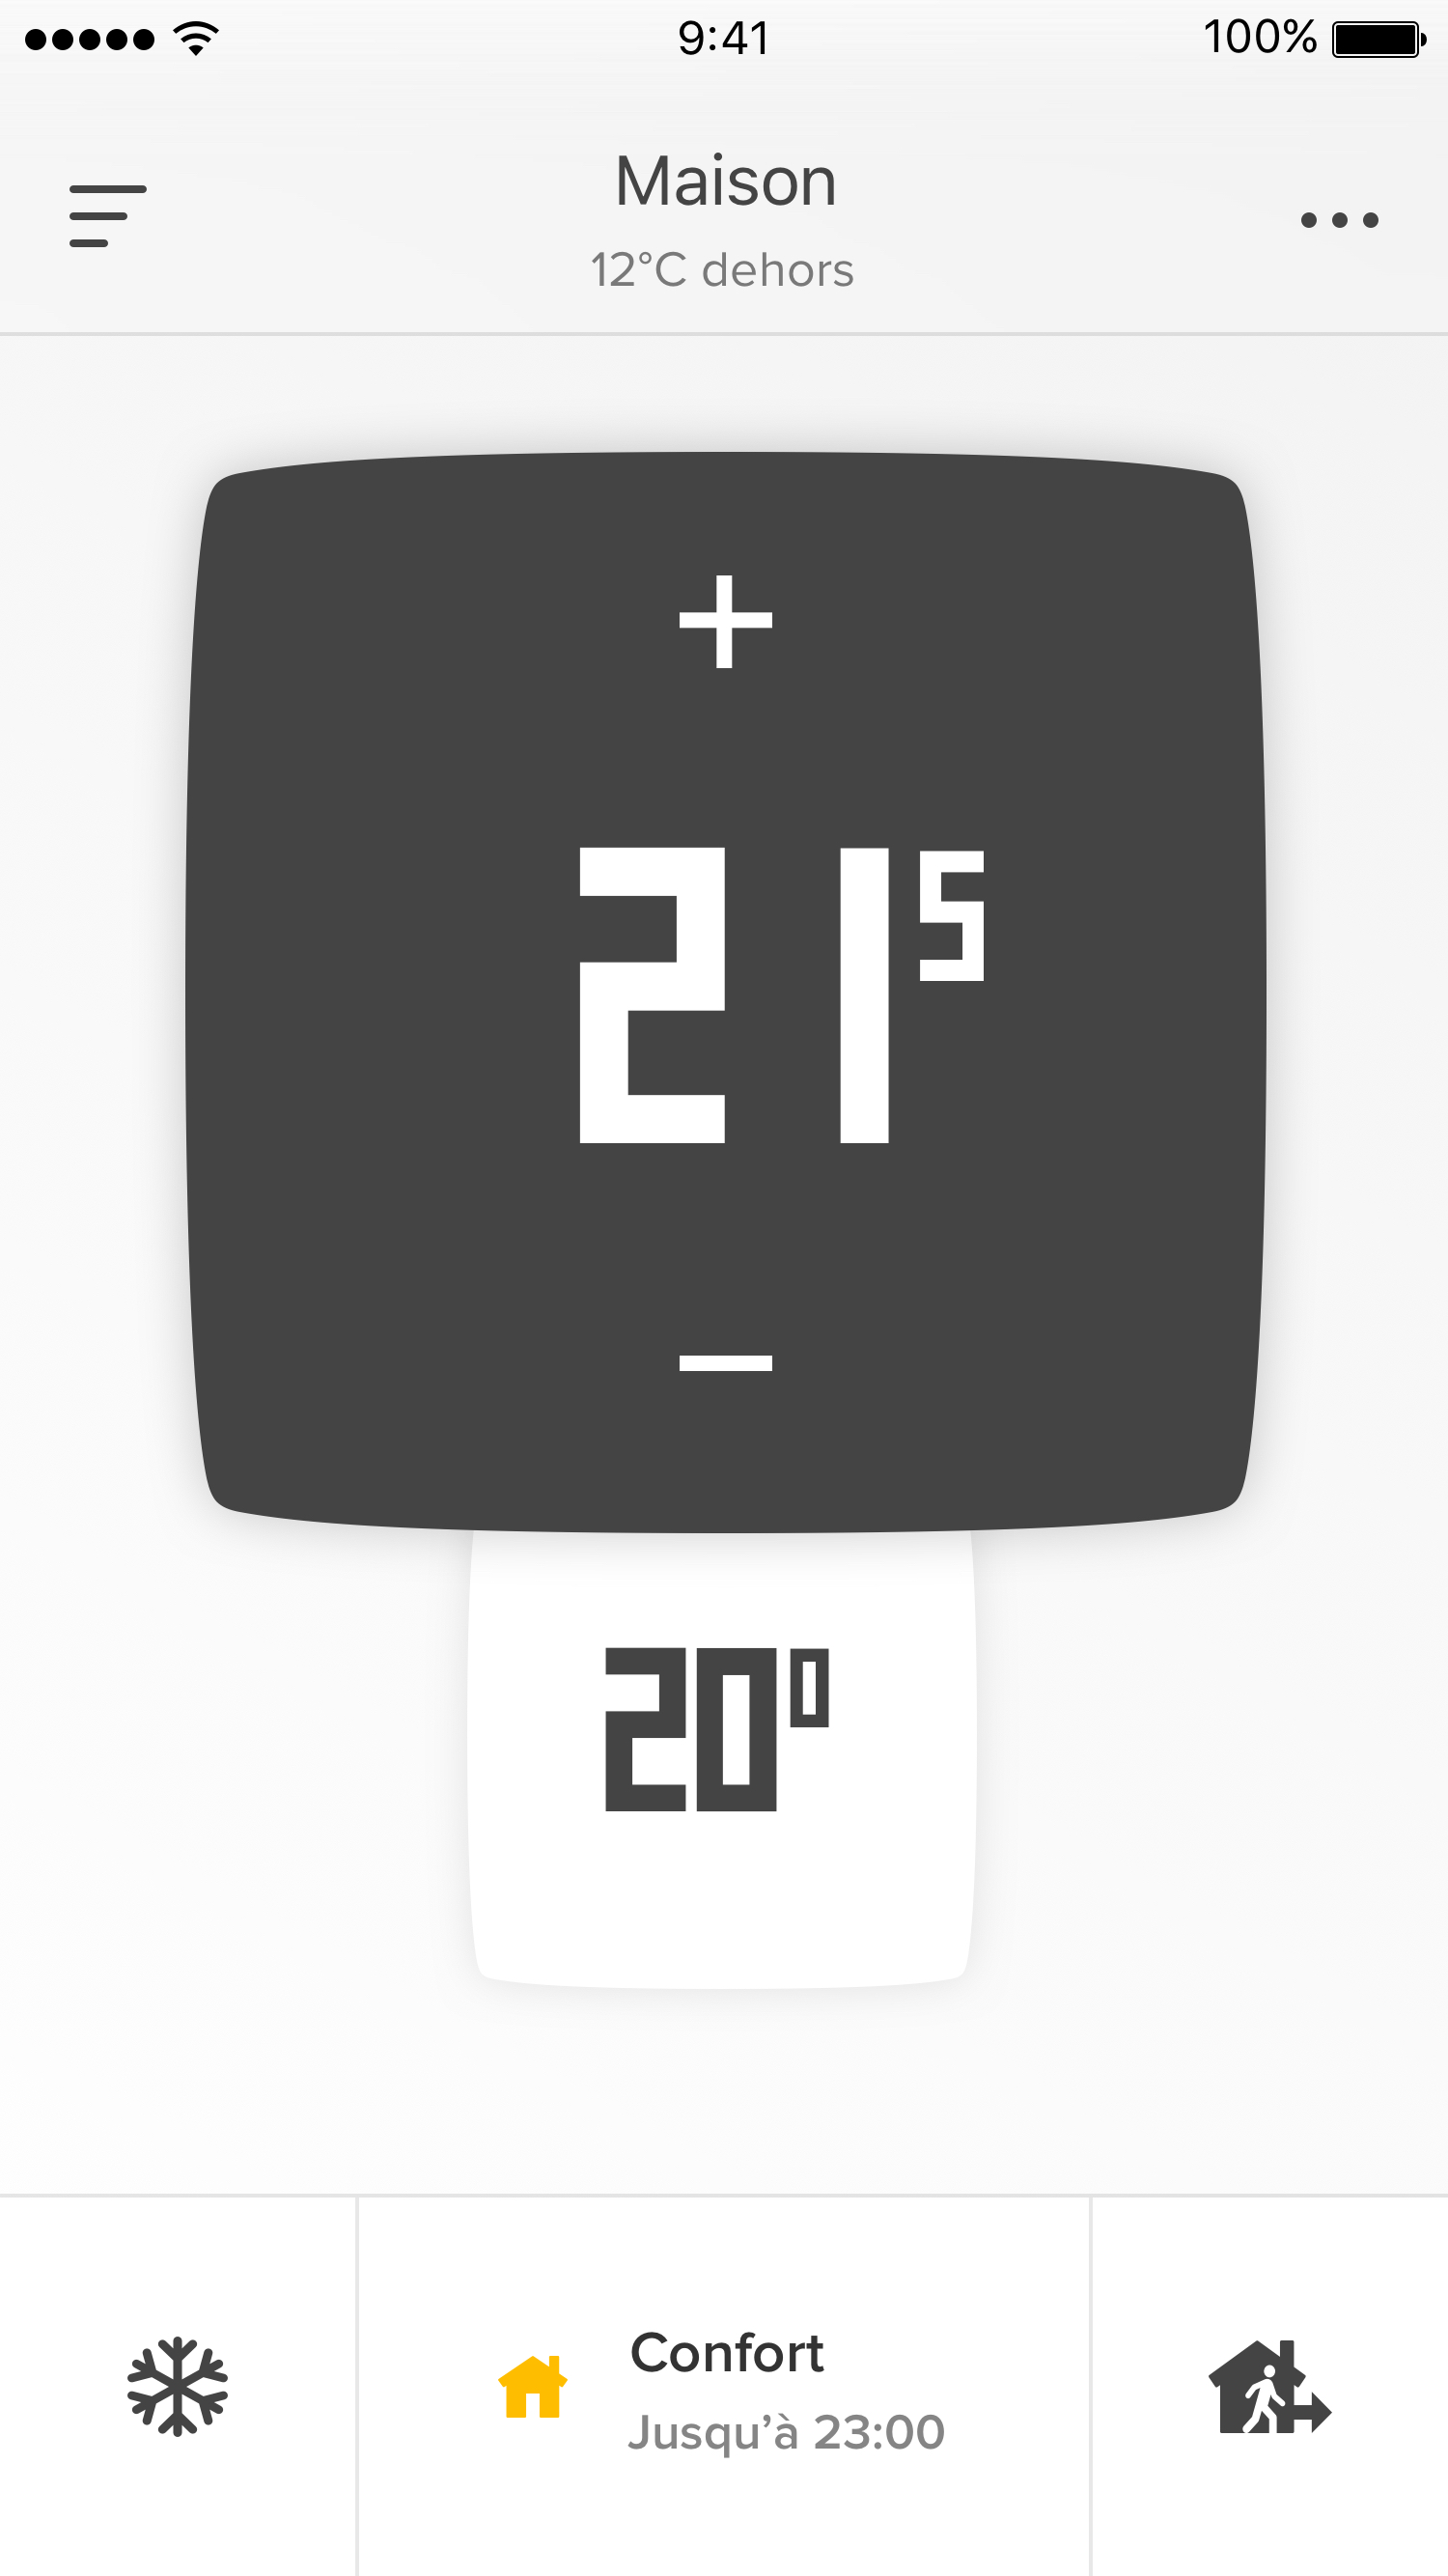 Application Energy with Thermostat